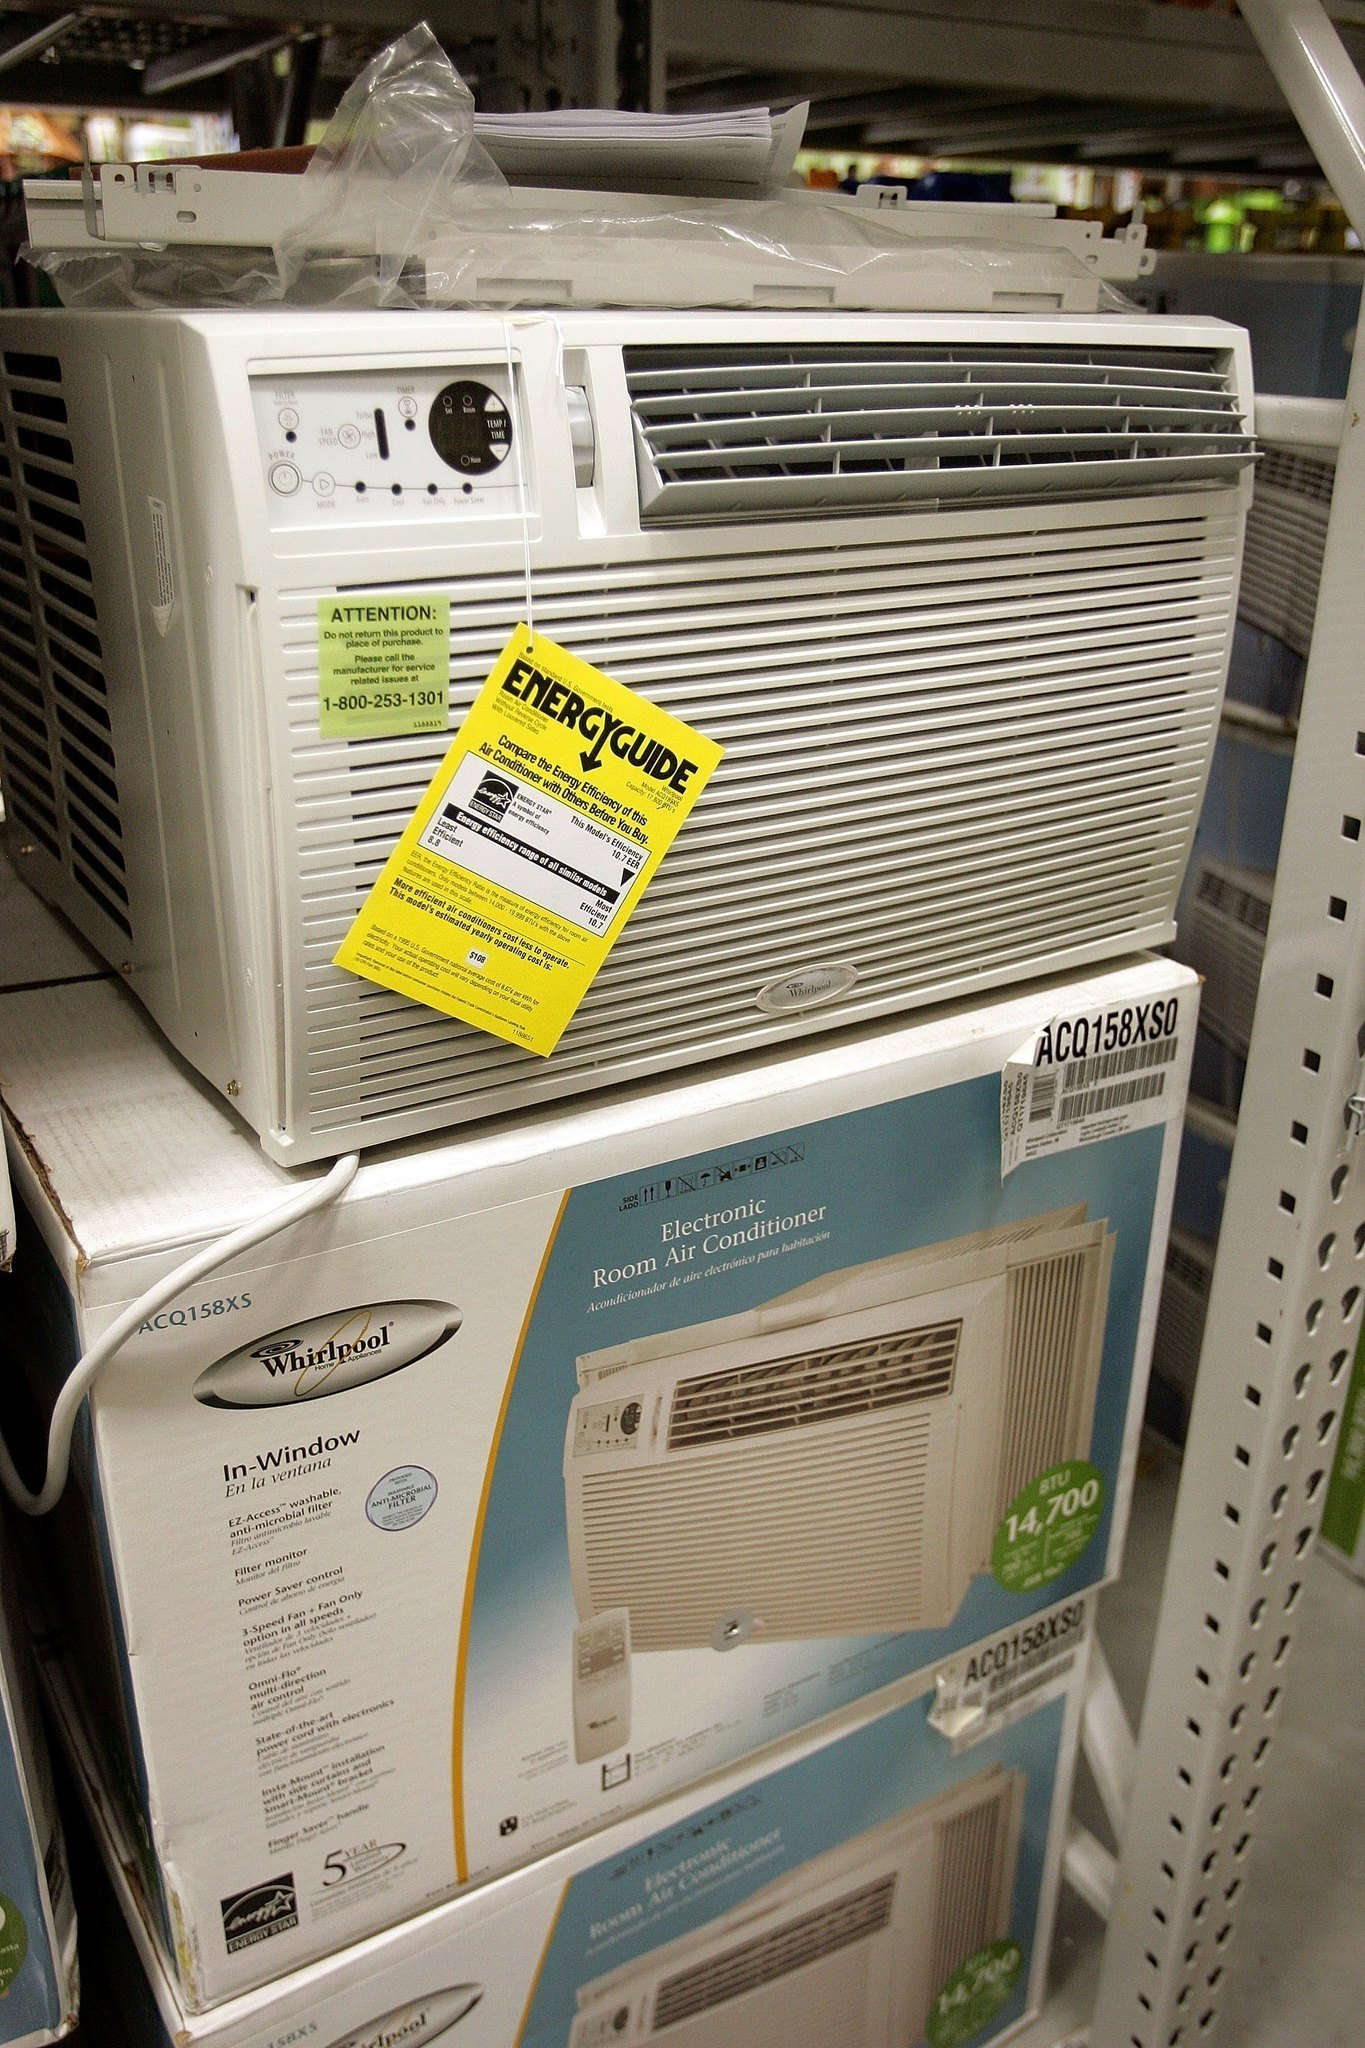 #B5A816 Europe Baffled By Americans' Love Of Air Conditioning  Most Recent 12960 Lowes Window Air Conditioner With Heat image with 1365x2048 px on helpvideos.info - Air Conditioners, Air Coolers and more